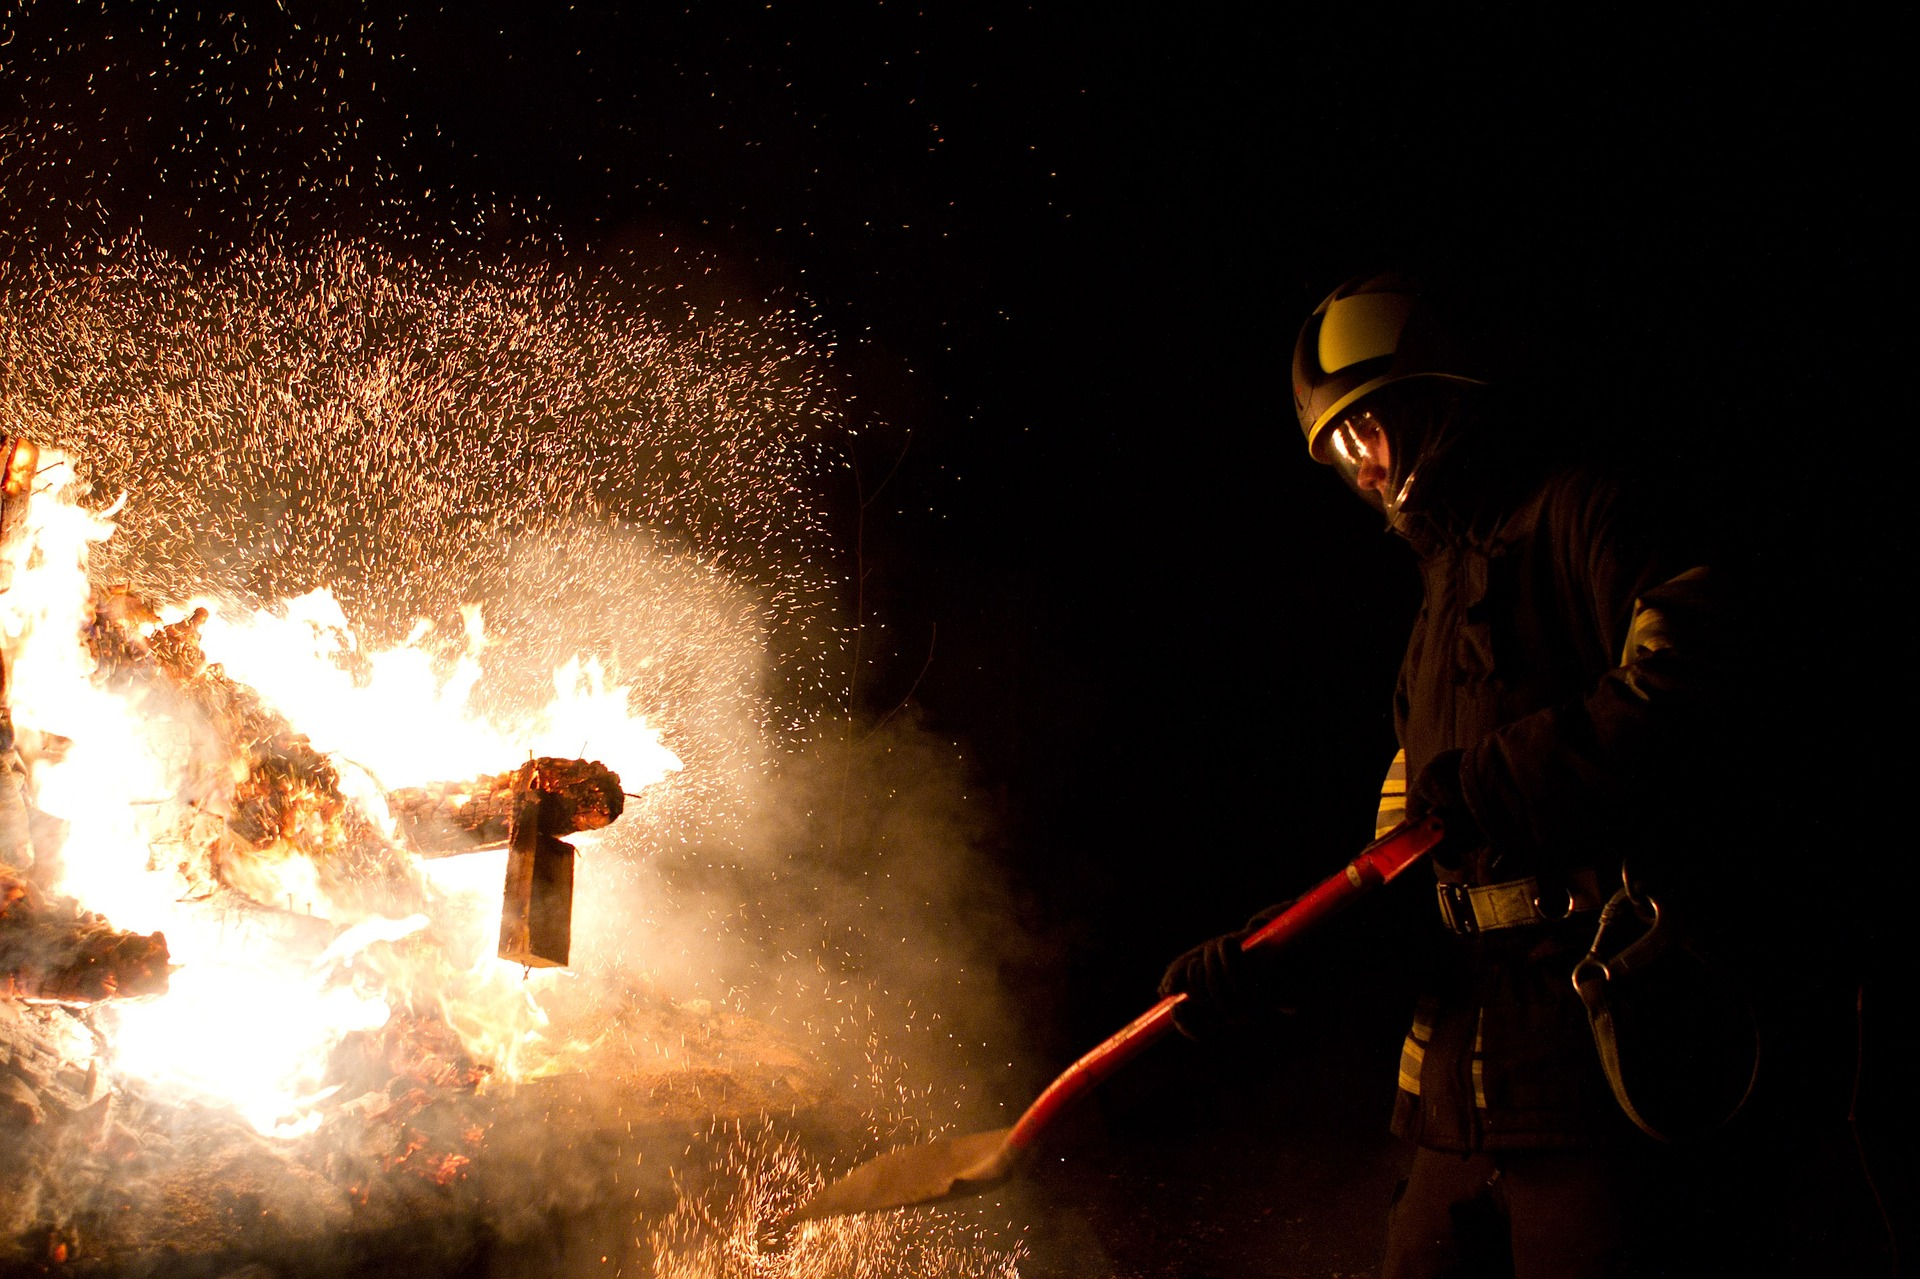 Firefighter tackling a blaze